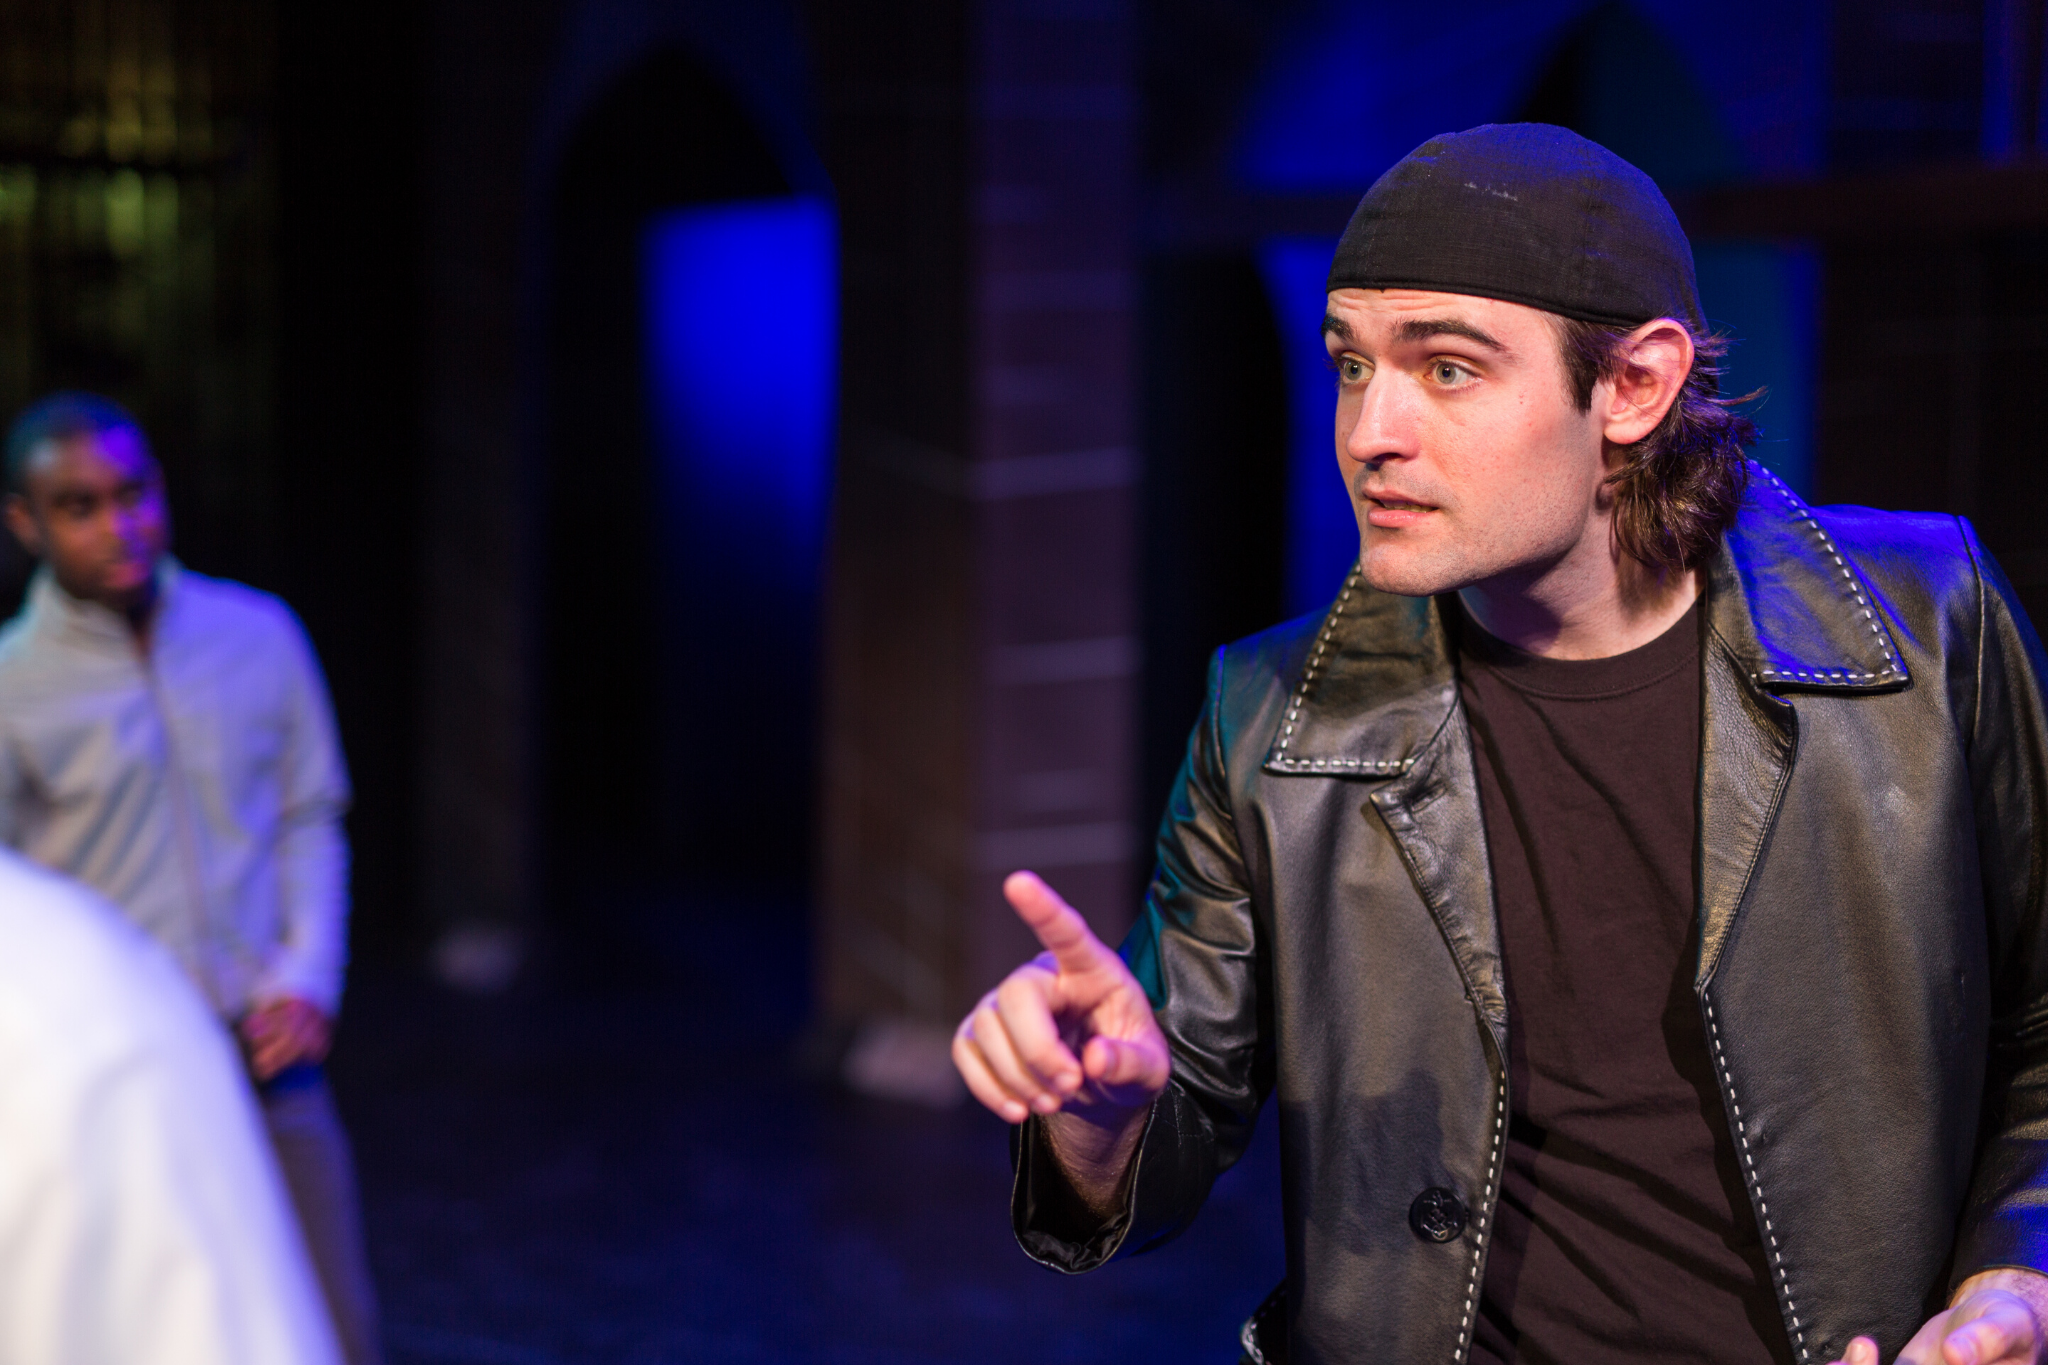 Addison Williams (Mercutio) in Romeo & Juliet, CSC2, 2015-Photo by Nile Hawver